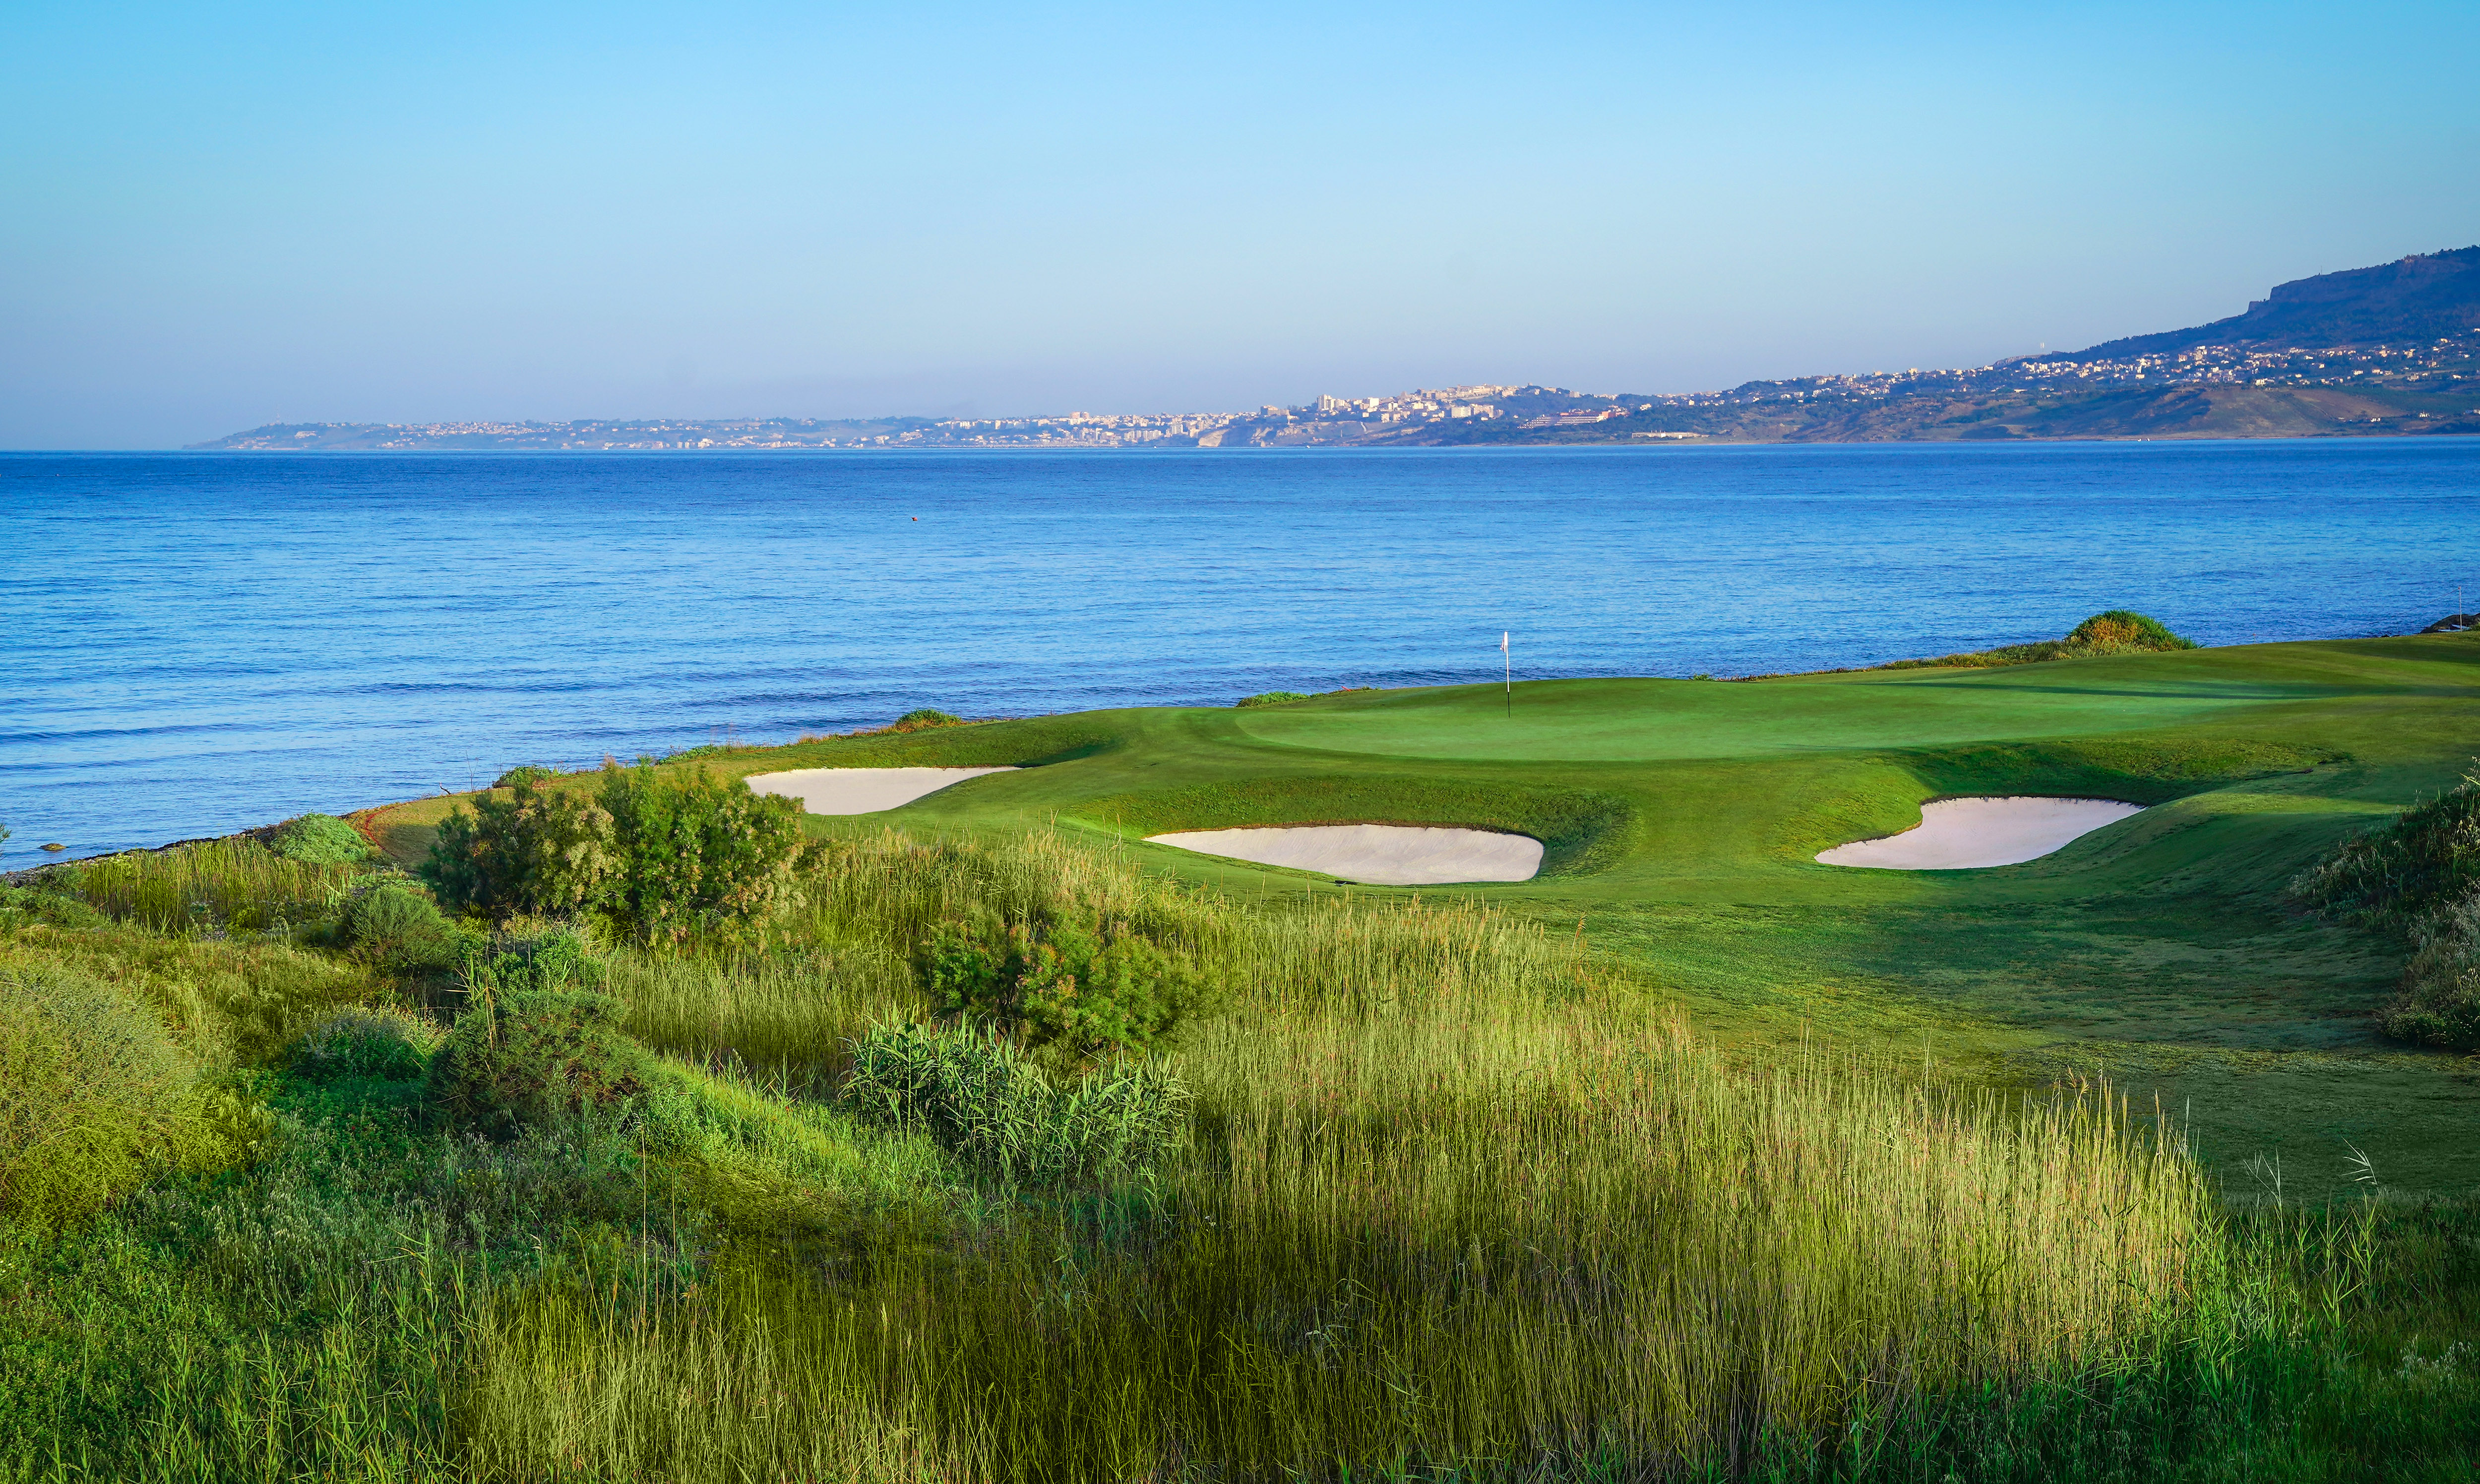 SCIACCA, ITALY - MAY 12: A general view of the seventh hole prior to the third round of the The Rocco Forte Open at the Verdura Gol Resort on May 12, 2018 in Sciacca, Italy. (Photo by Stuart Franklin/Getty Images)